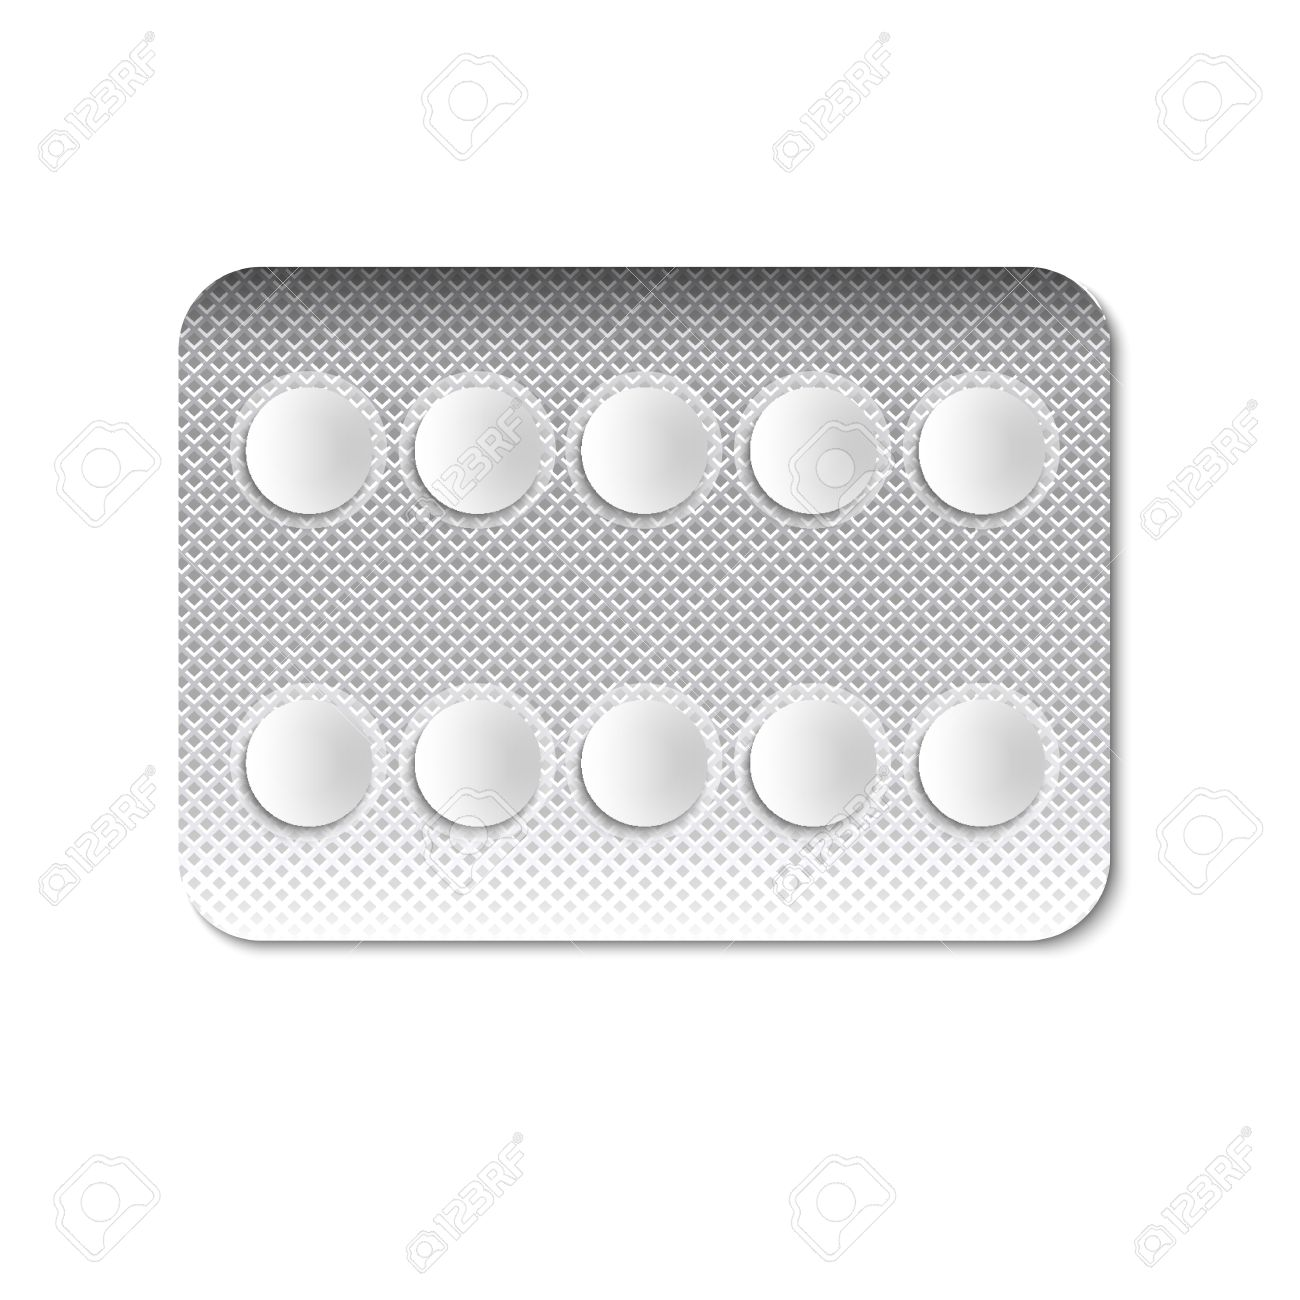 Round Pills In A Blister Pack Illustration Royalty Free Cliparts.